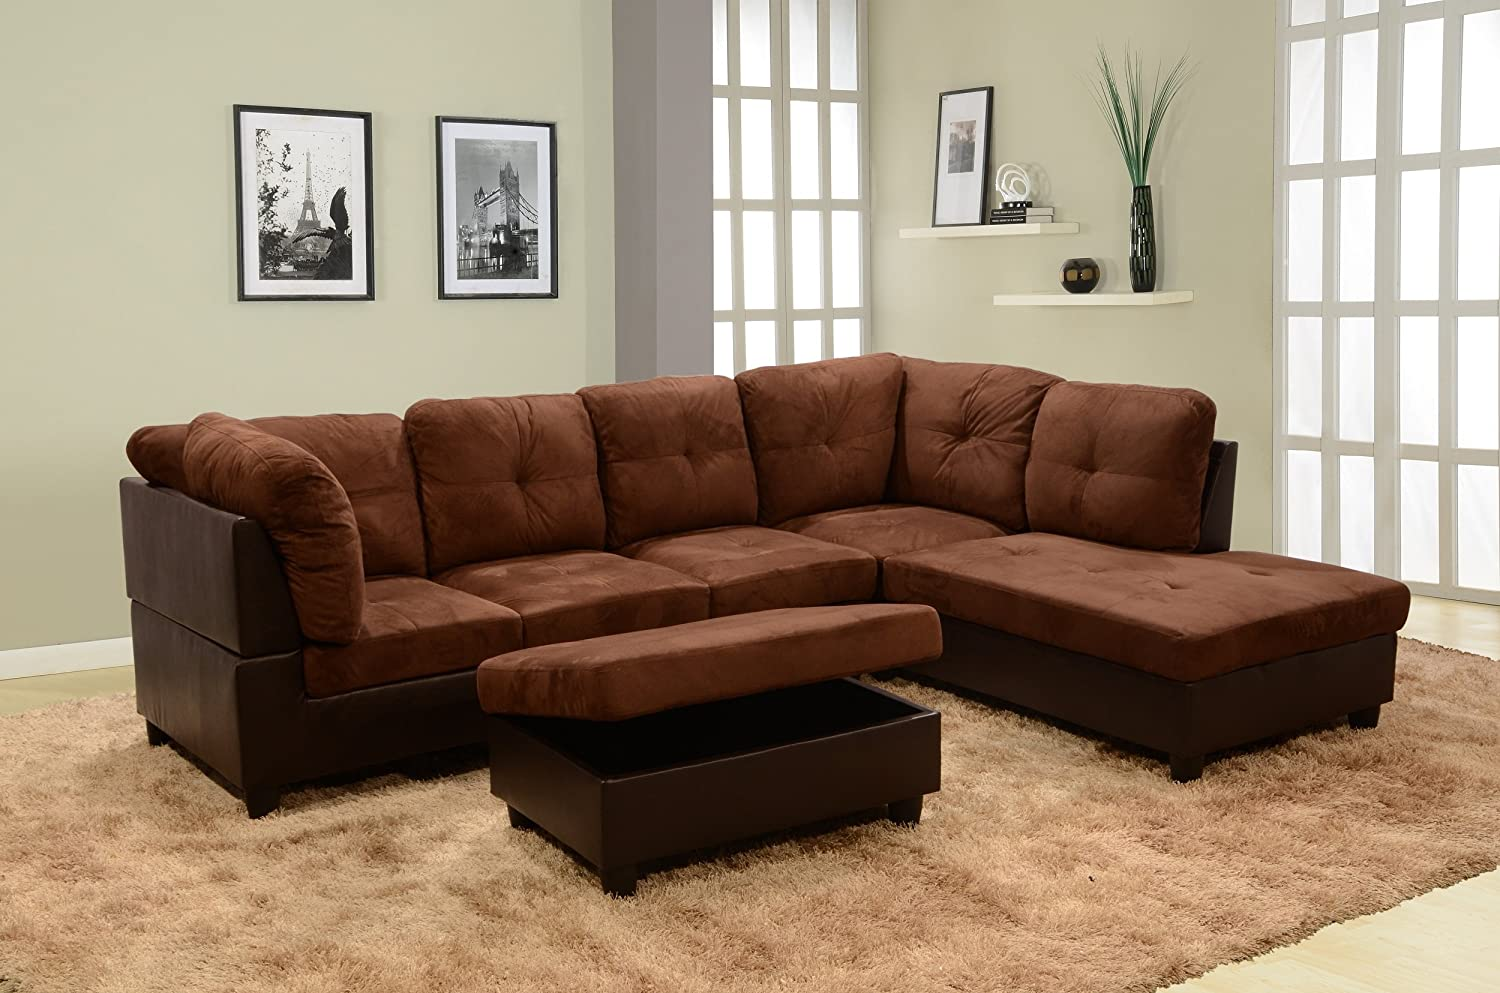 Beverly Fine Furniture Sectional Sofa Set, Chocolate Brown